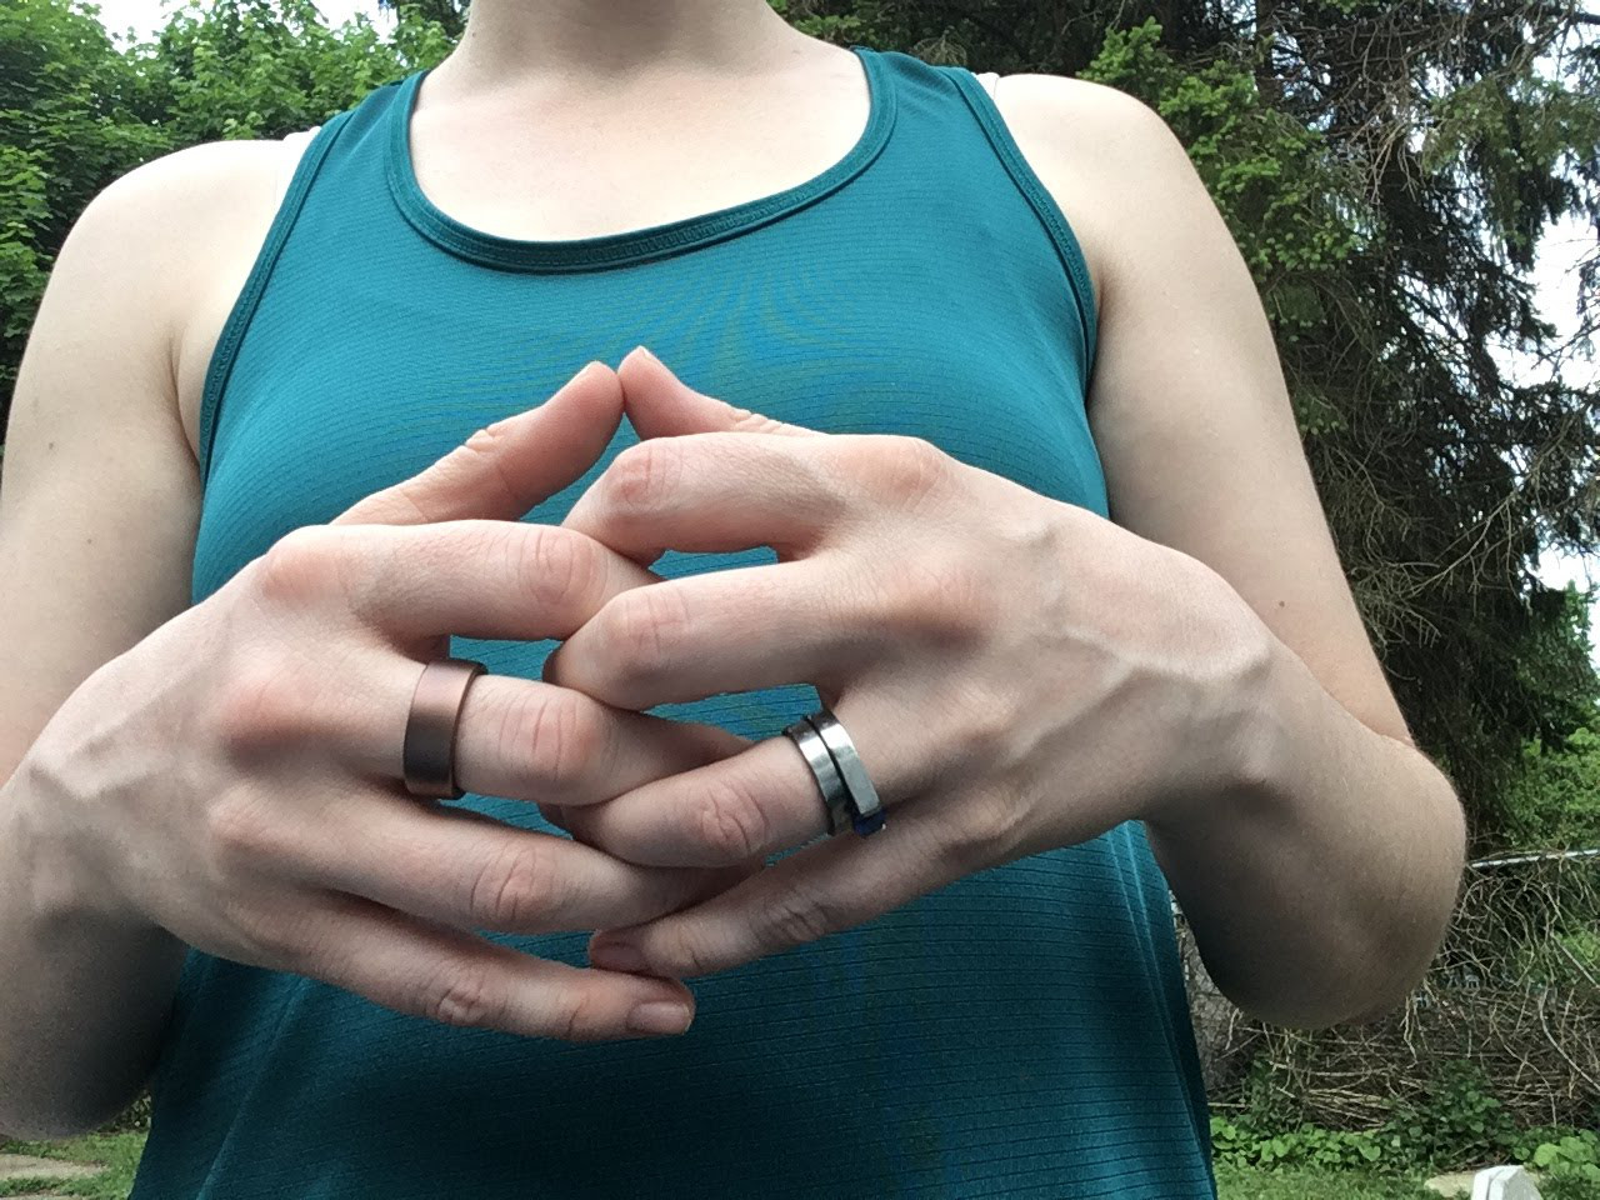 Motiv on the left, with normal rings for comparison